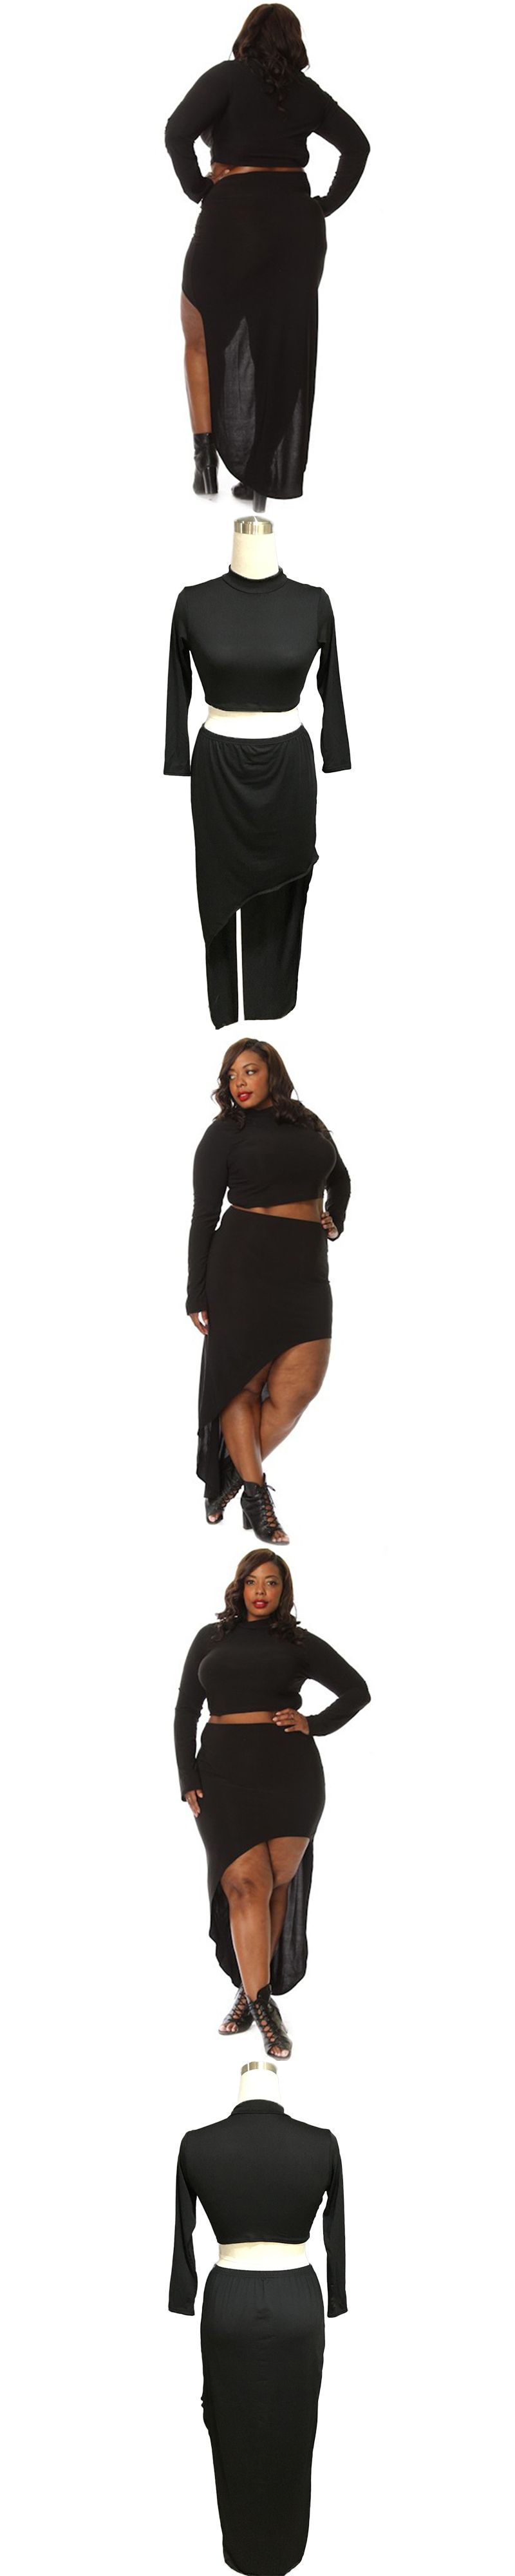 92be2127e3a 2018 summer new sexy club party two piece plus size women sets solid black  turtleneck elastic waist full sleeve lady set 2138